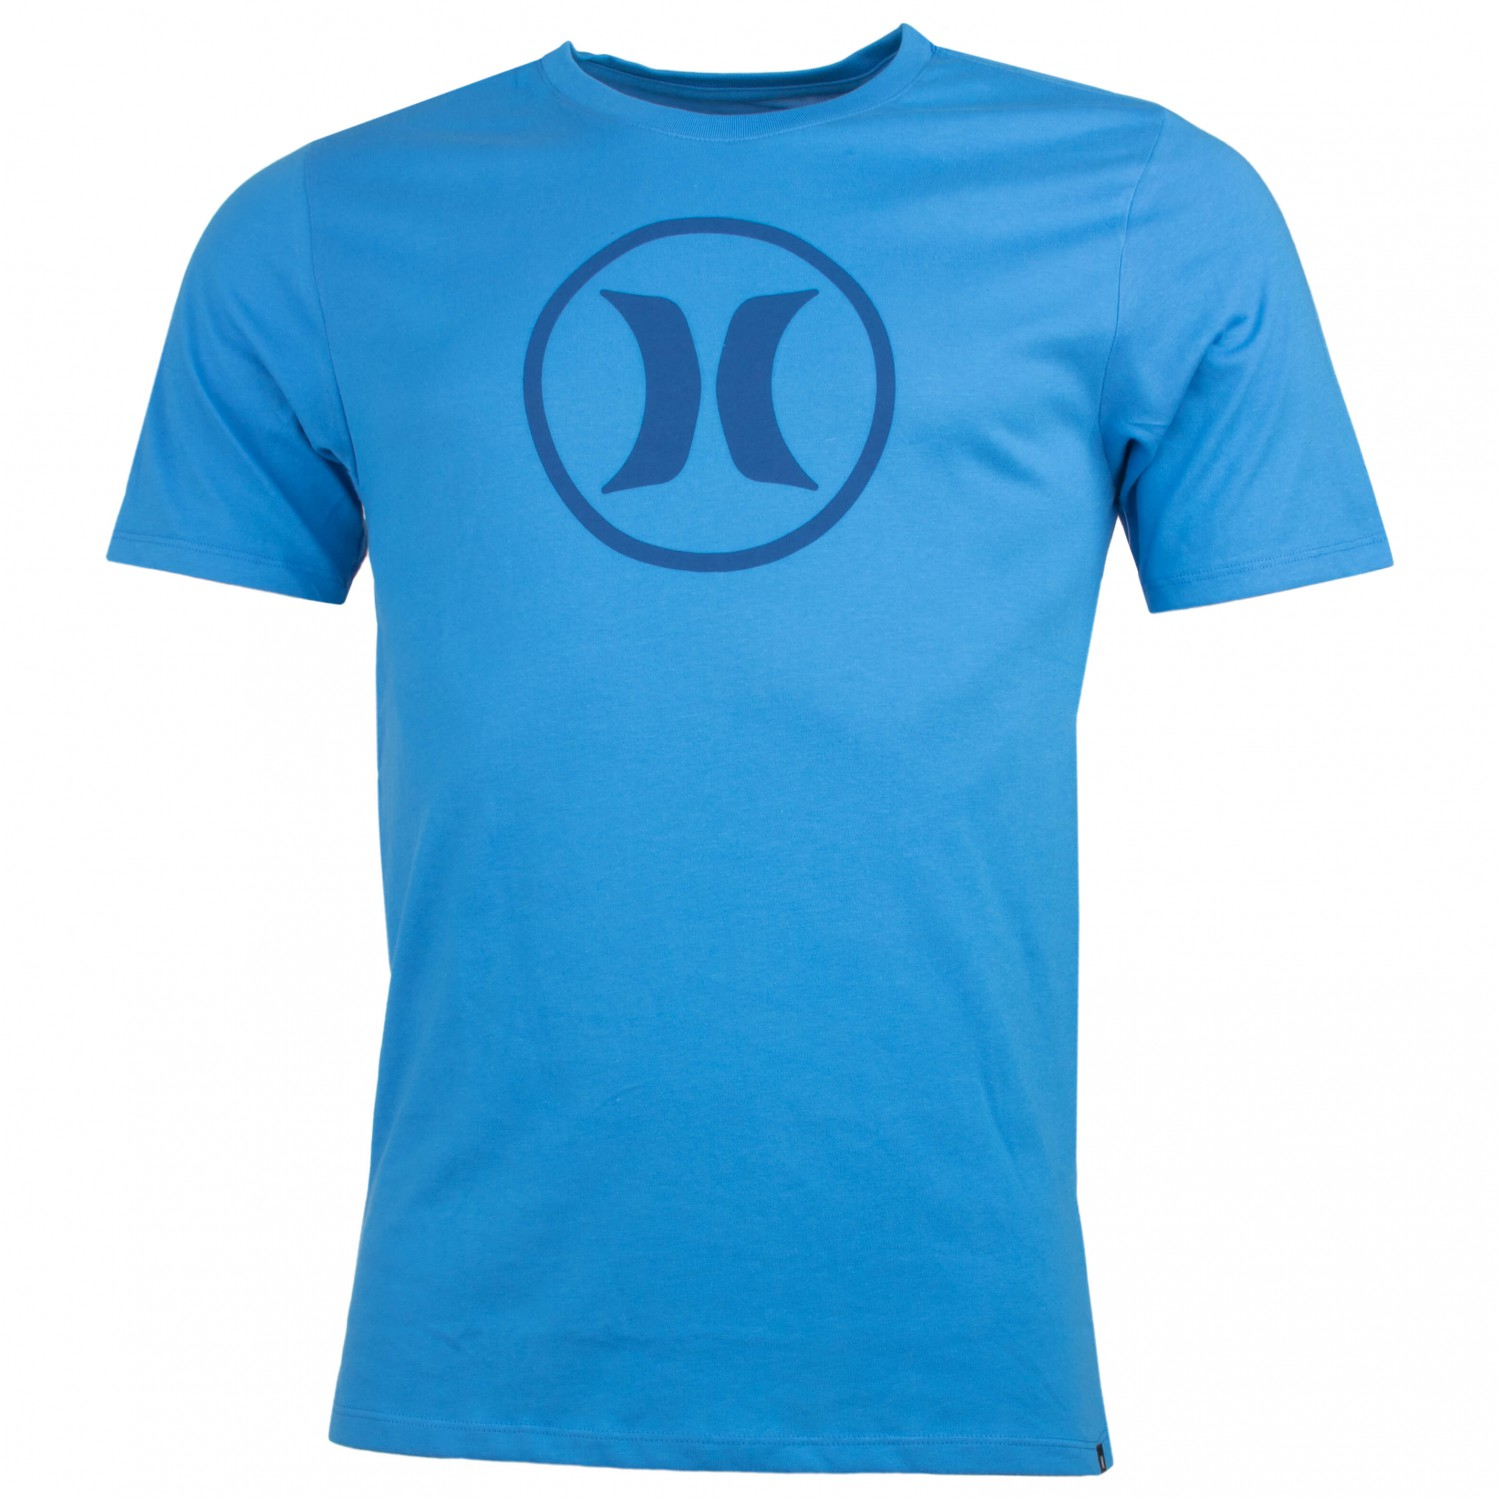 Hurley circle icon dri fit t shirt men 39 s buy online for Buy dri fit shirts